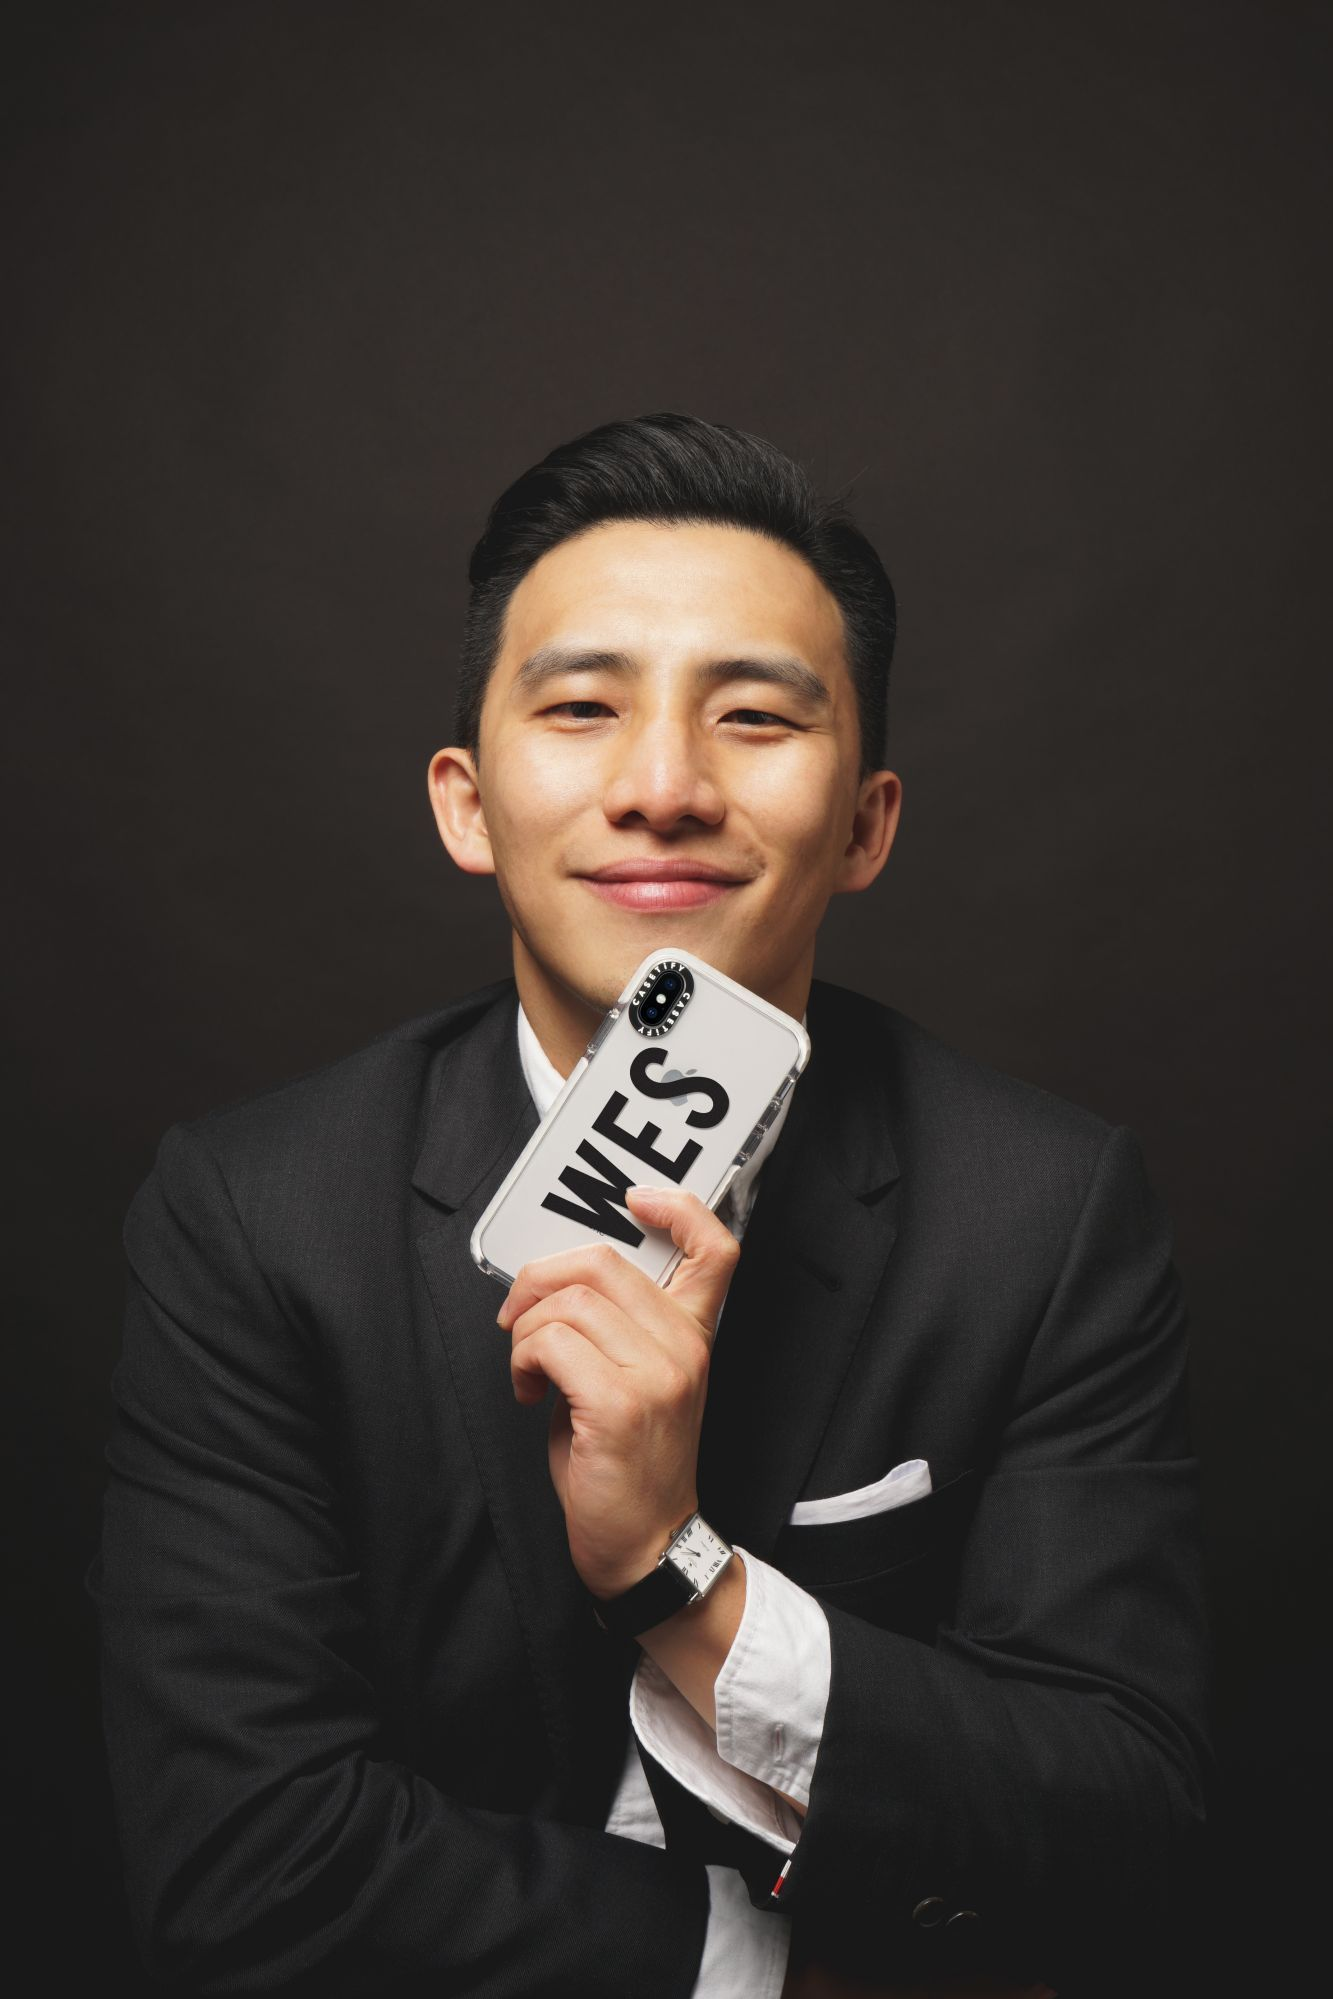 Casetify Founder Wesley Ng On How To Pivot Your Business Amidst A Global Crisis